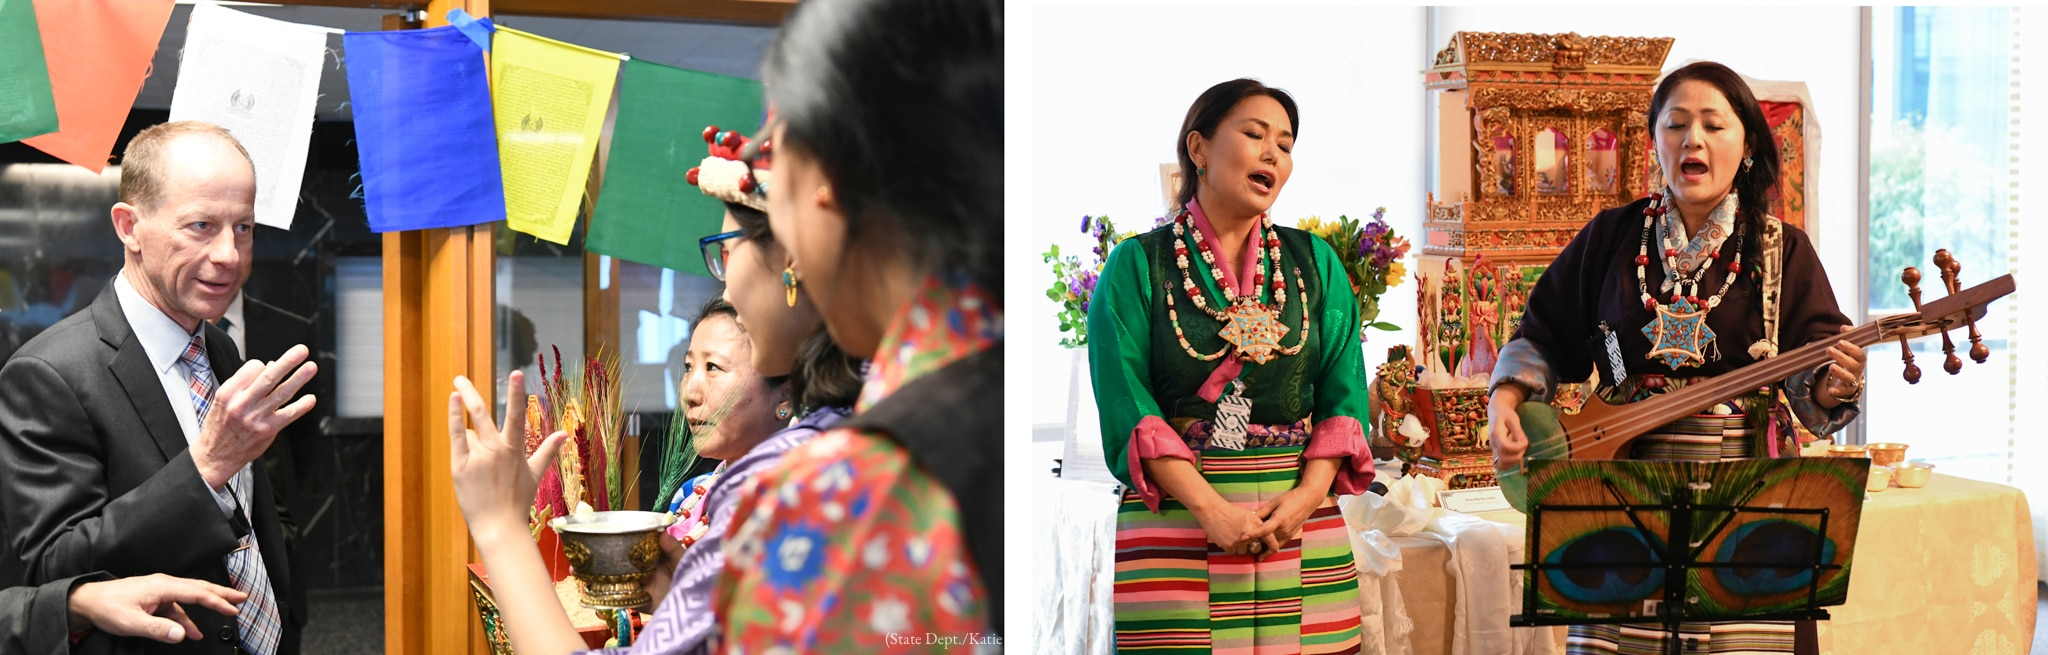 Left: Man making gesture and looking at people (State Dept./Katie Pollman) Right: Two women singing, one holding musical instrument (State Dept./Katie Pollman)